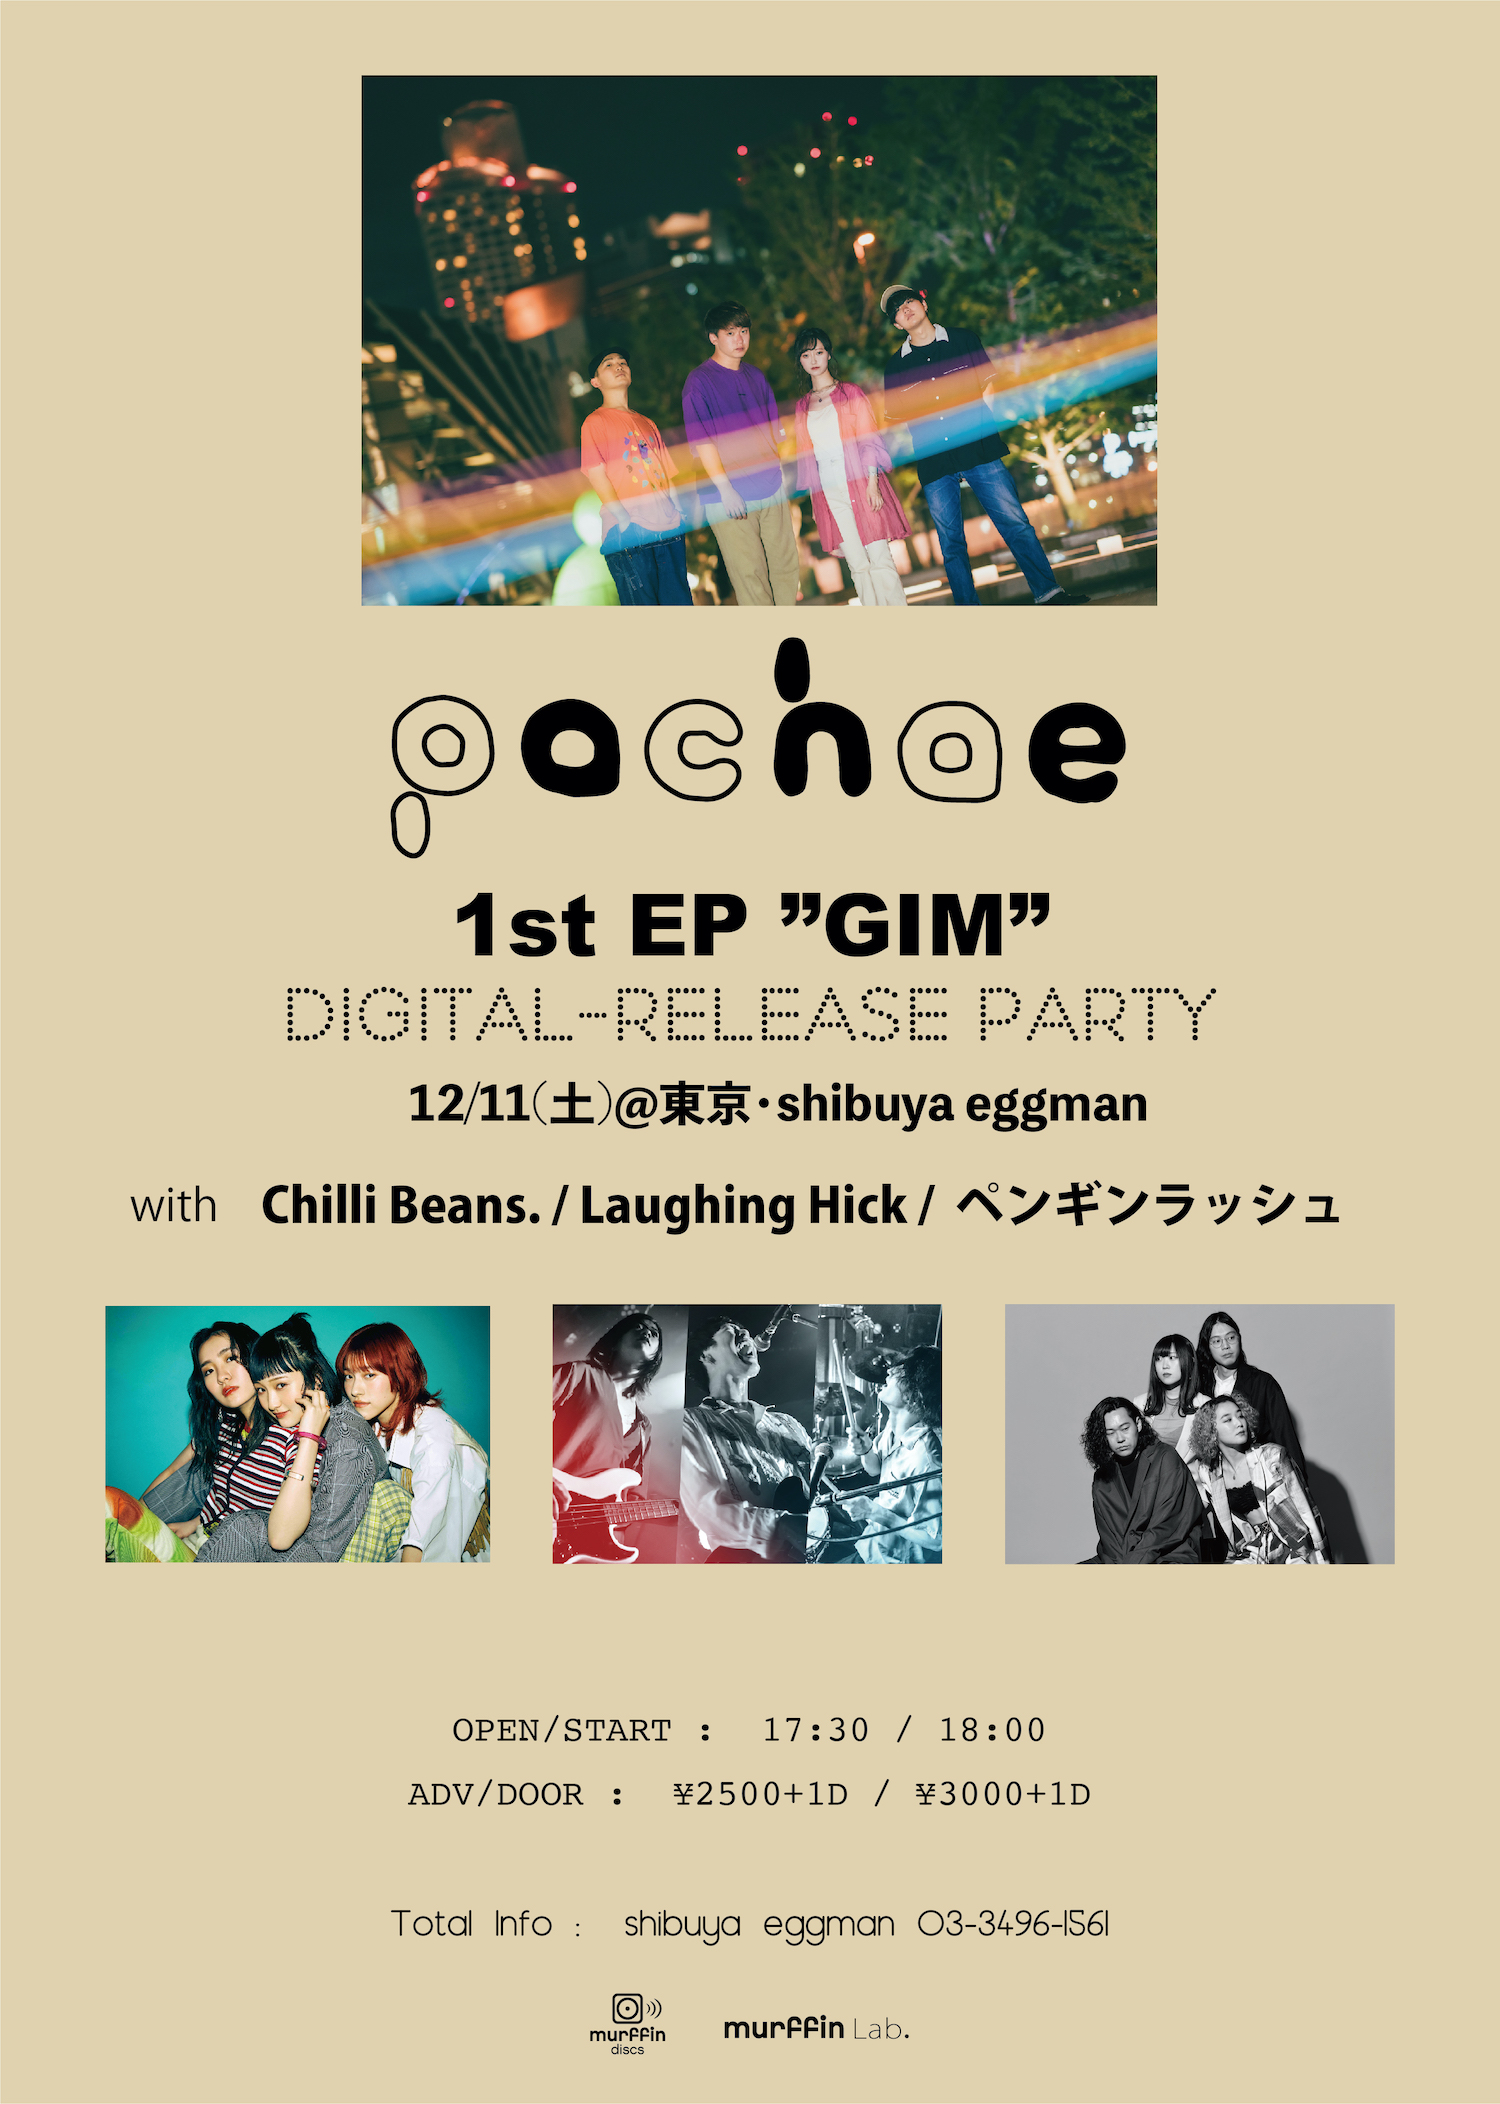 『pachae 1st EP「GIM」Digital-Release Party』